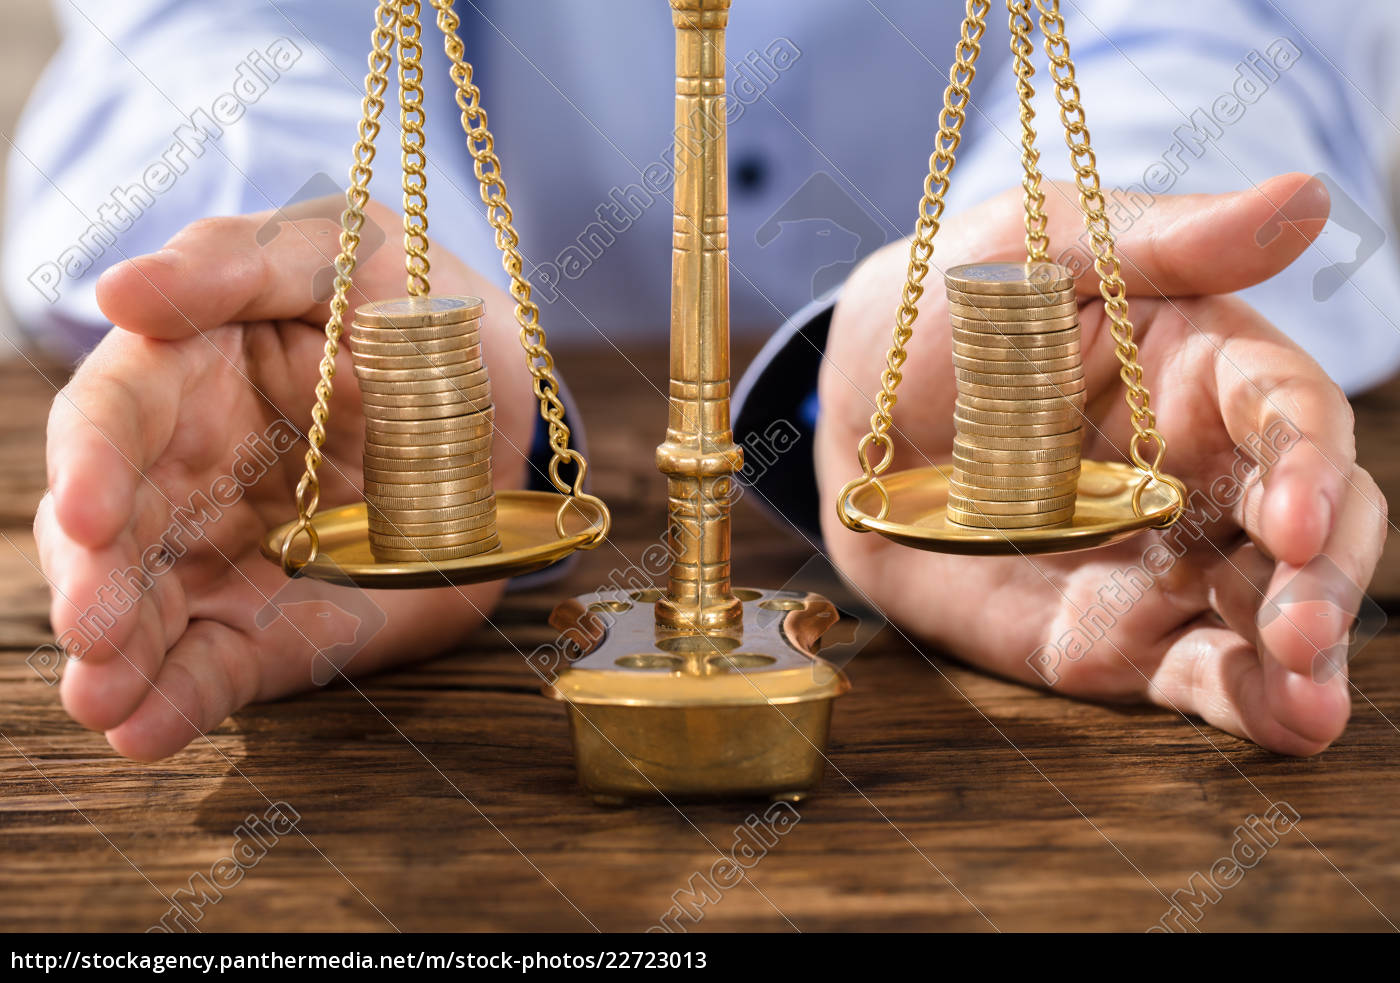 person, protecting, justice, scale, with, coins - 22723013